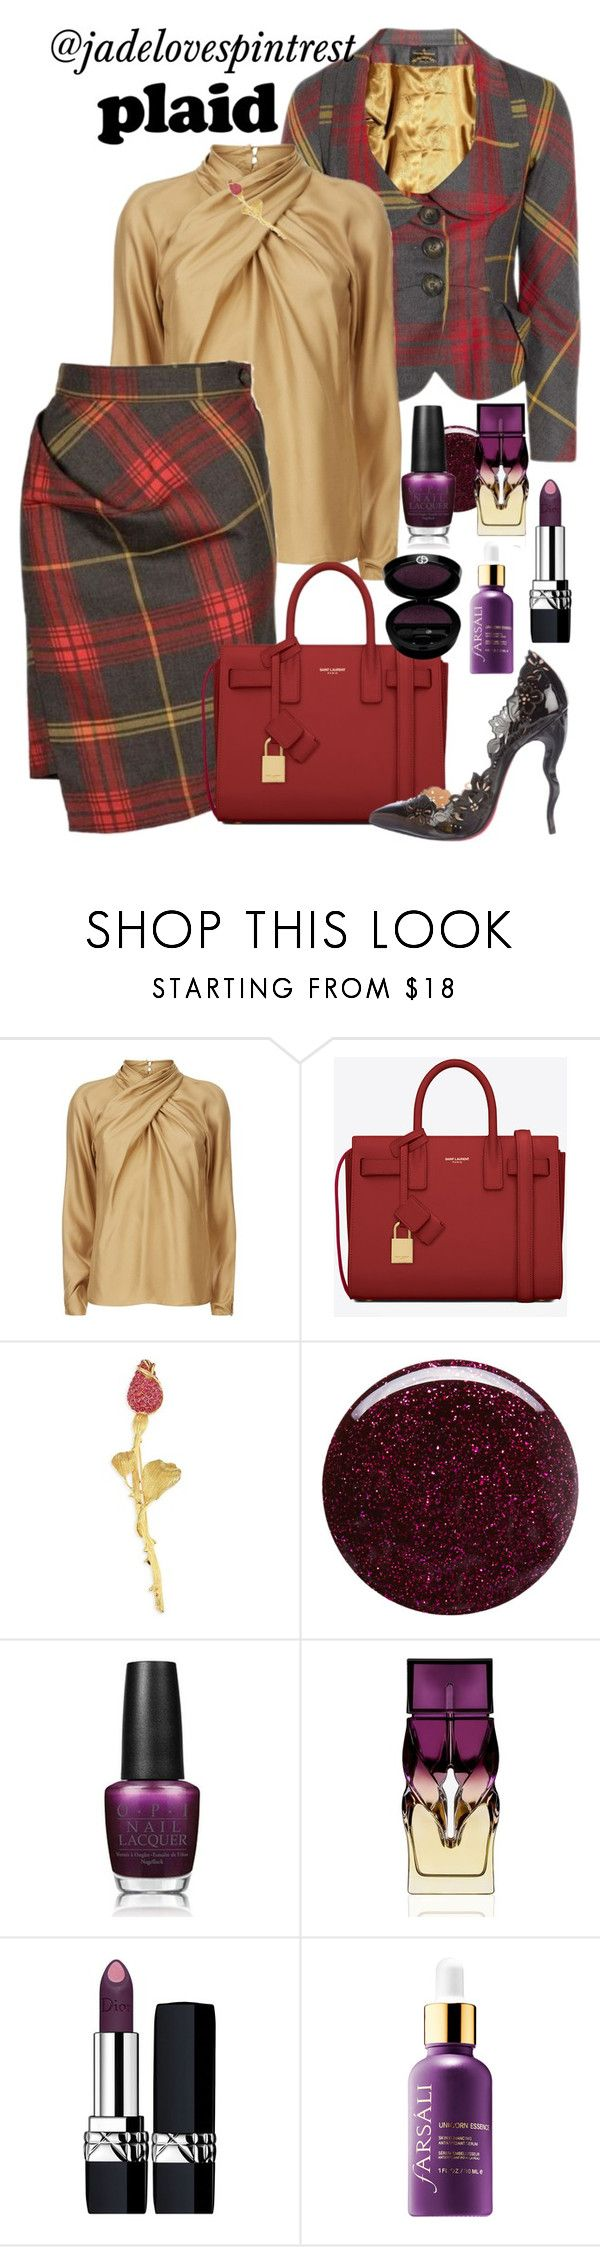 """Plaid Suit"" by jadelovespintrest ❤ liked on Polyvore featuring Temperley London, Yves Saint Laurent, Oscar de la Renta, Deborah Lippmann, OPI, Christian Louboutin, Christian Dior and Sephora Collection"